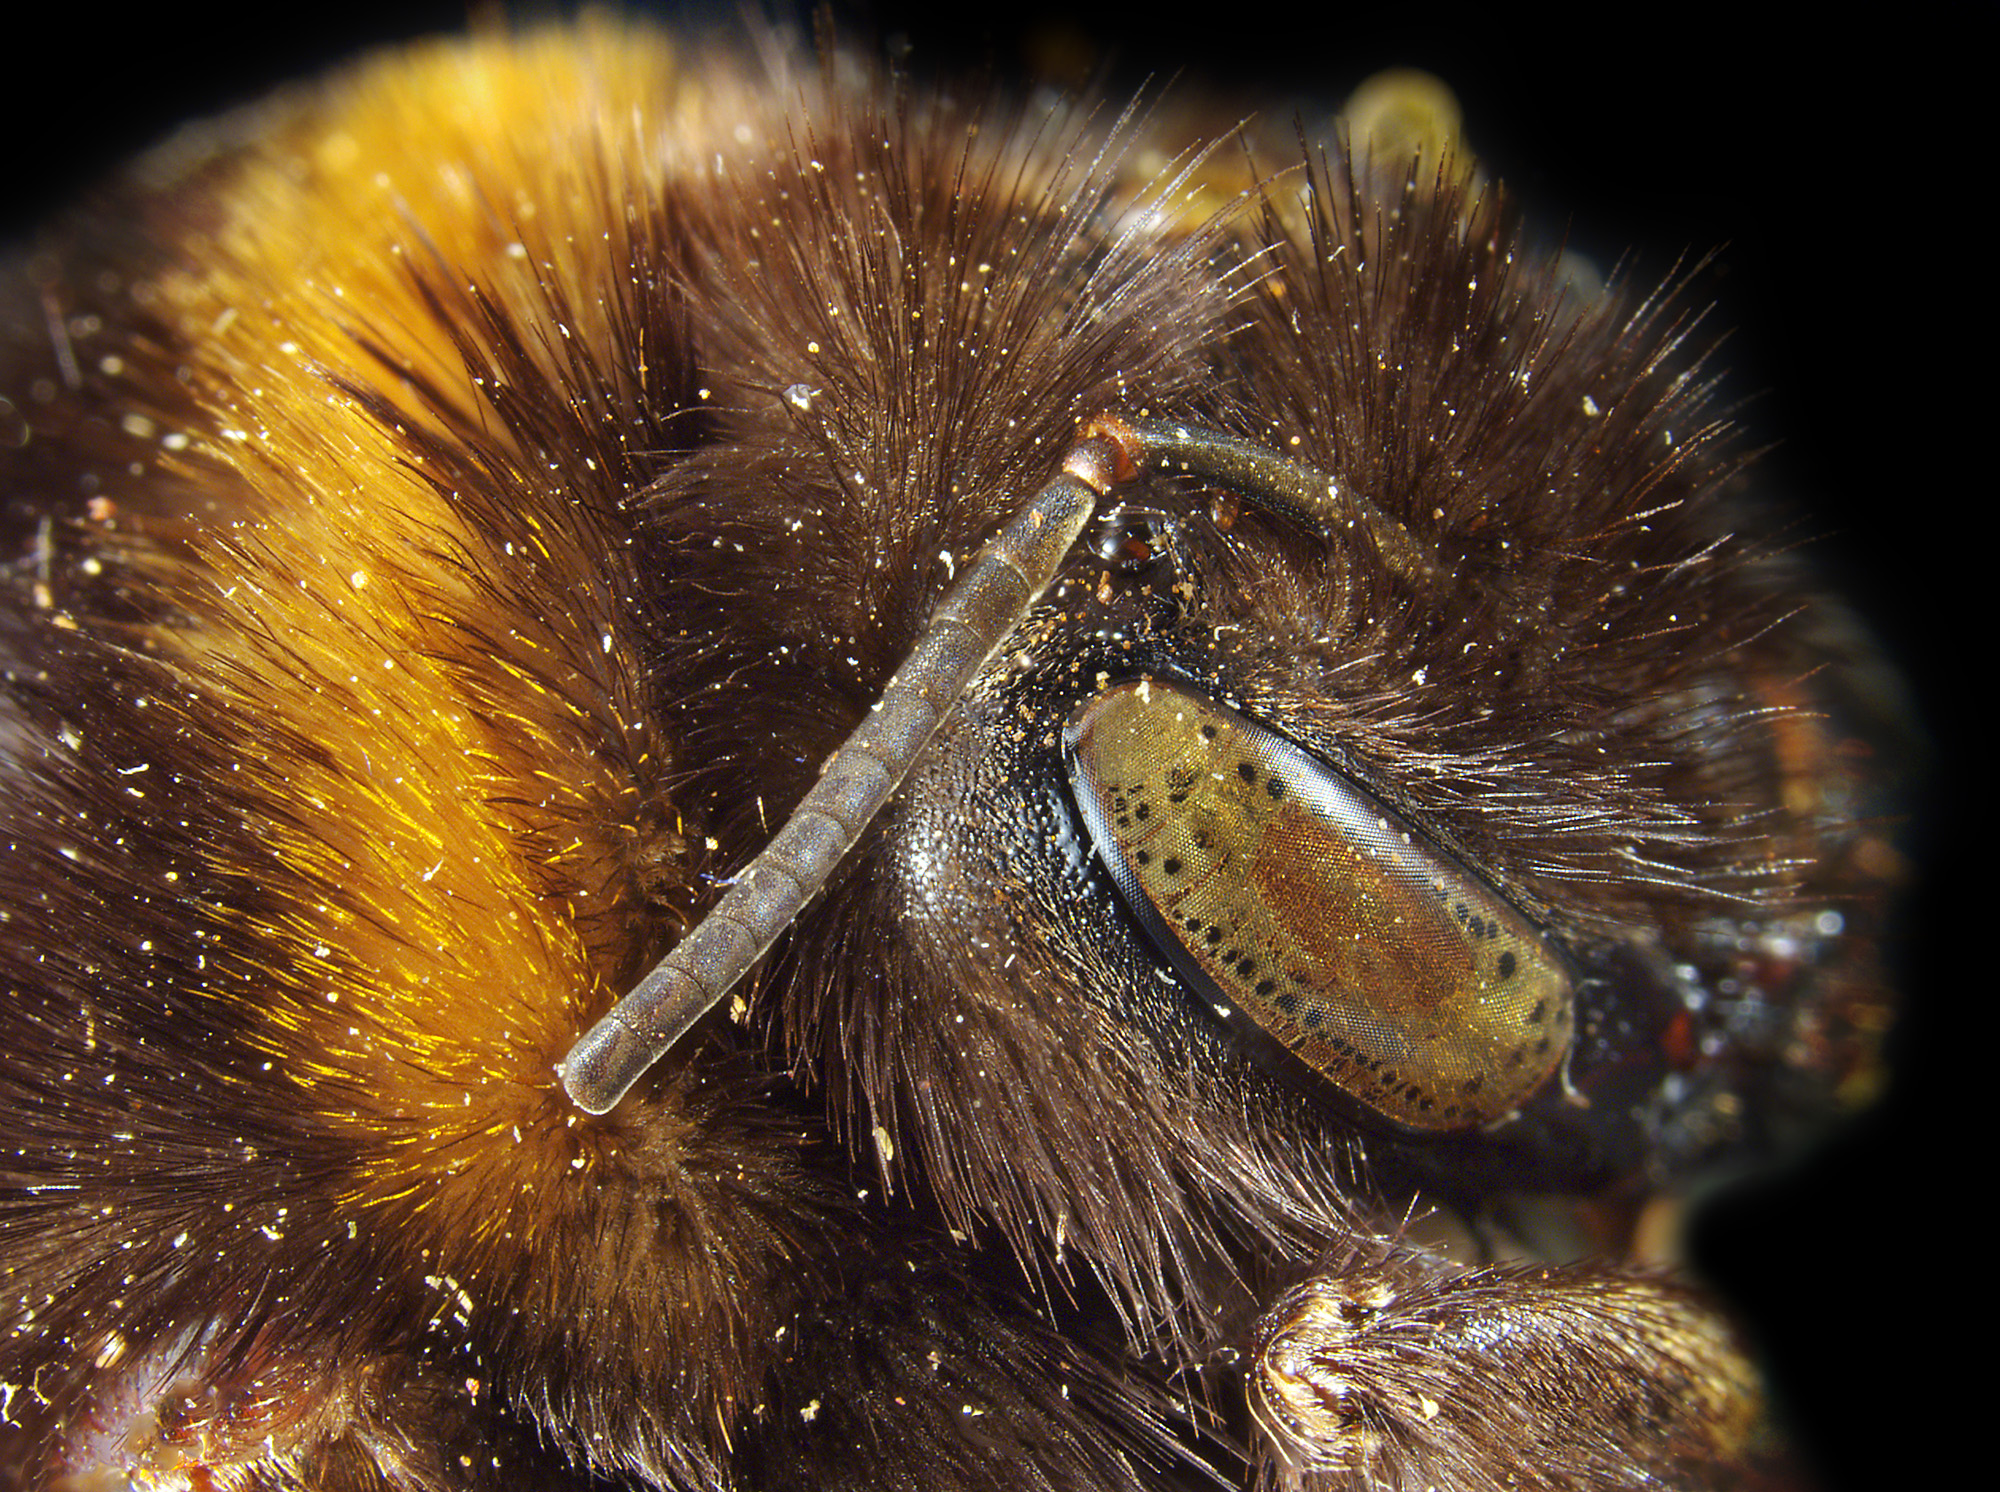 Close up of a bumble bee's head and antenna